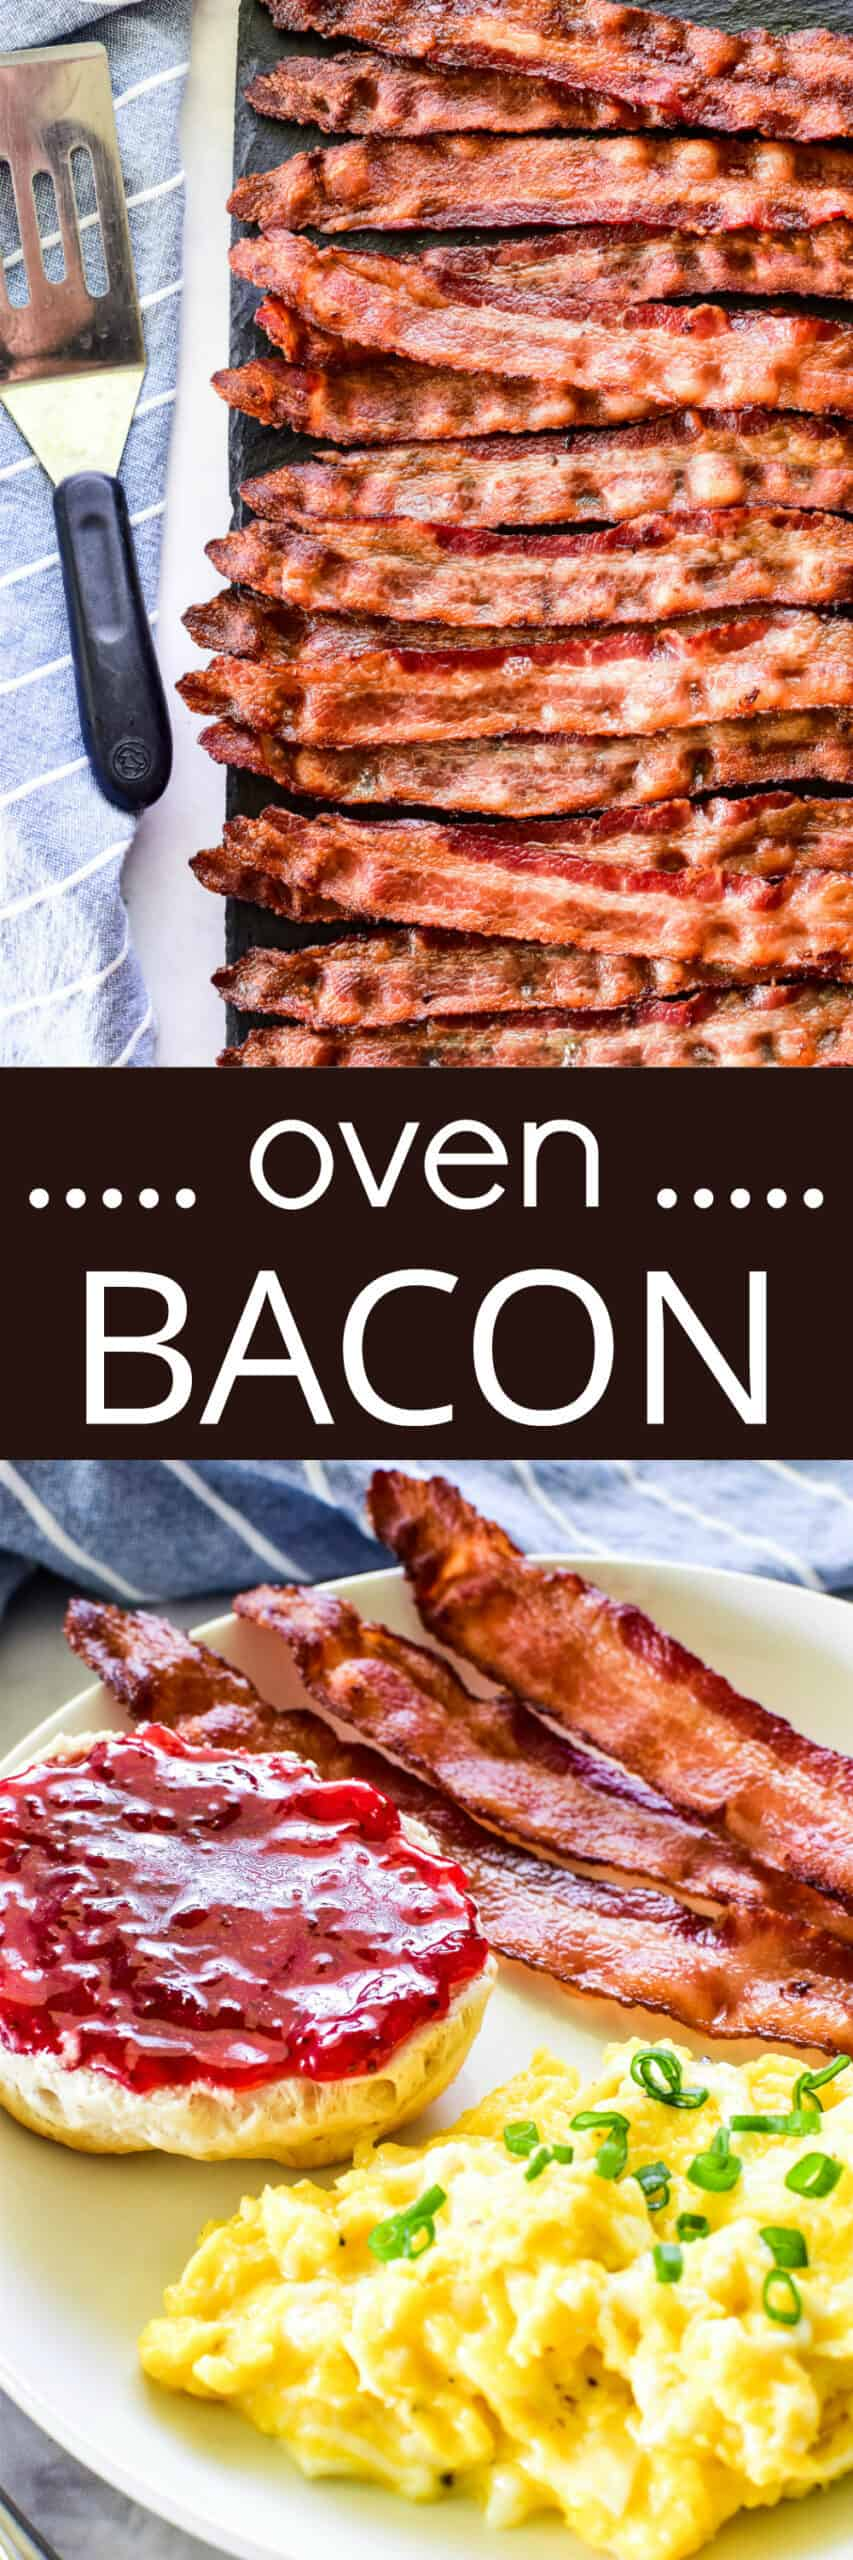 Collage image of Oven Bacon